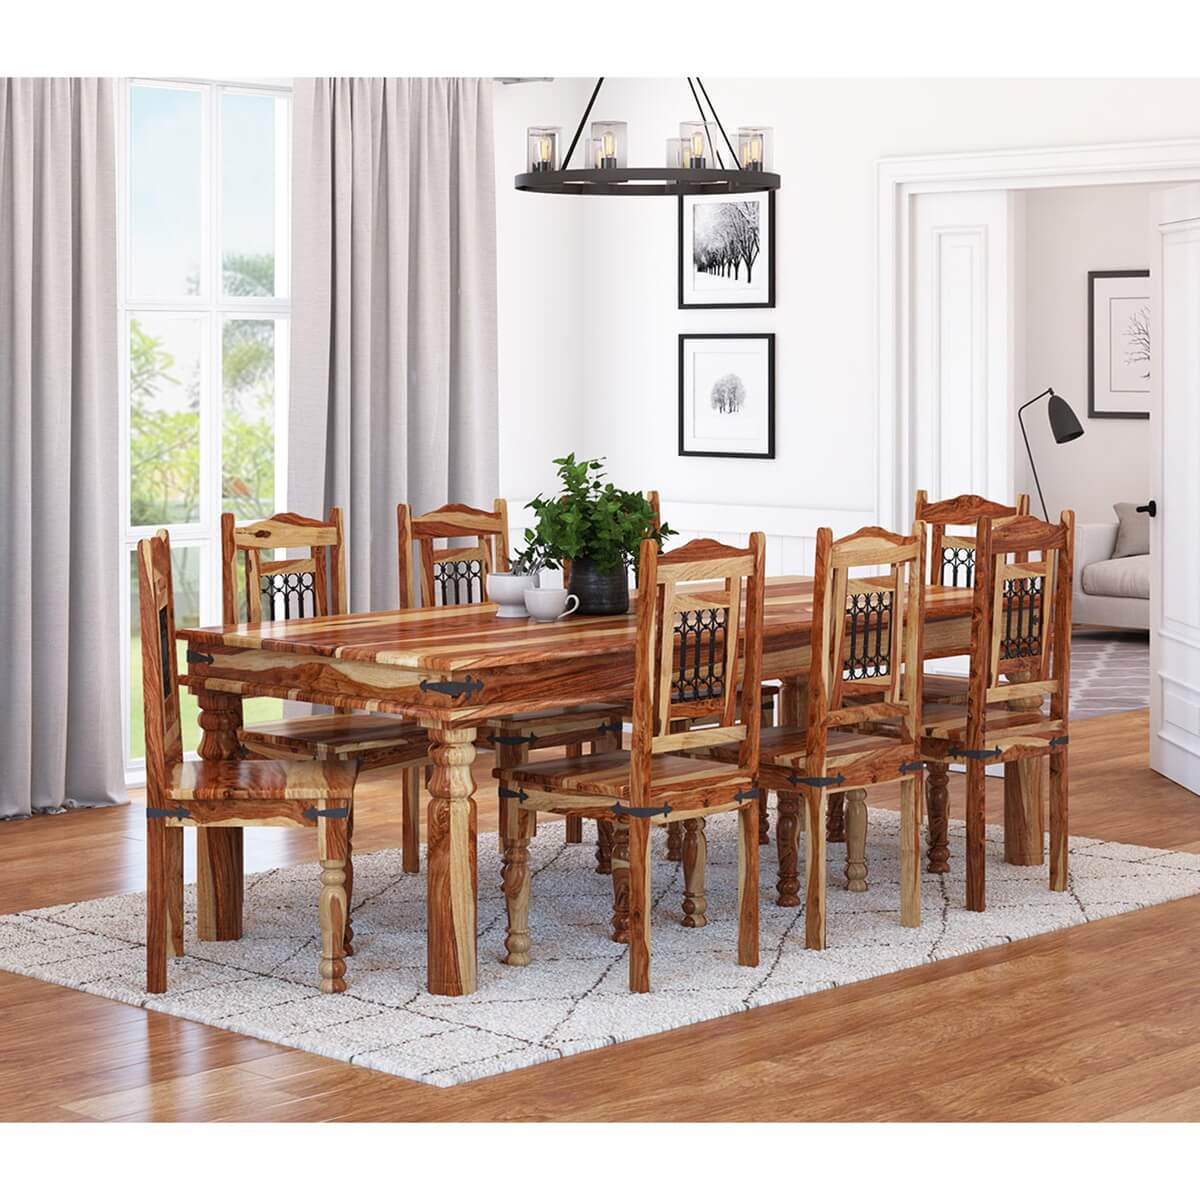 Dallas classic solid wood rustic dining room table and for Wood dining table set